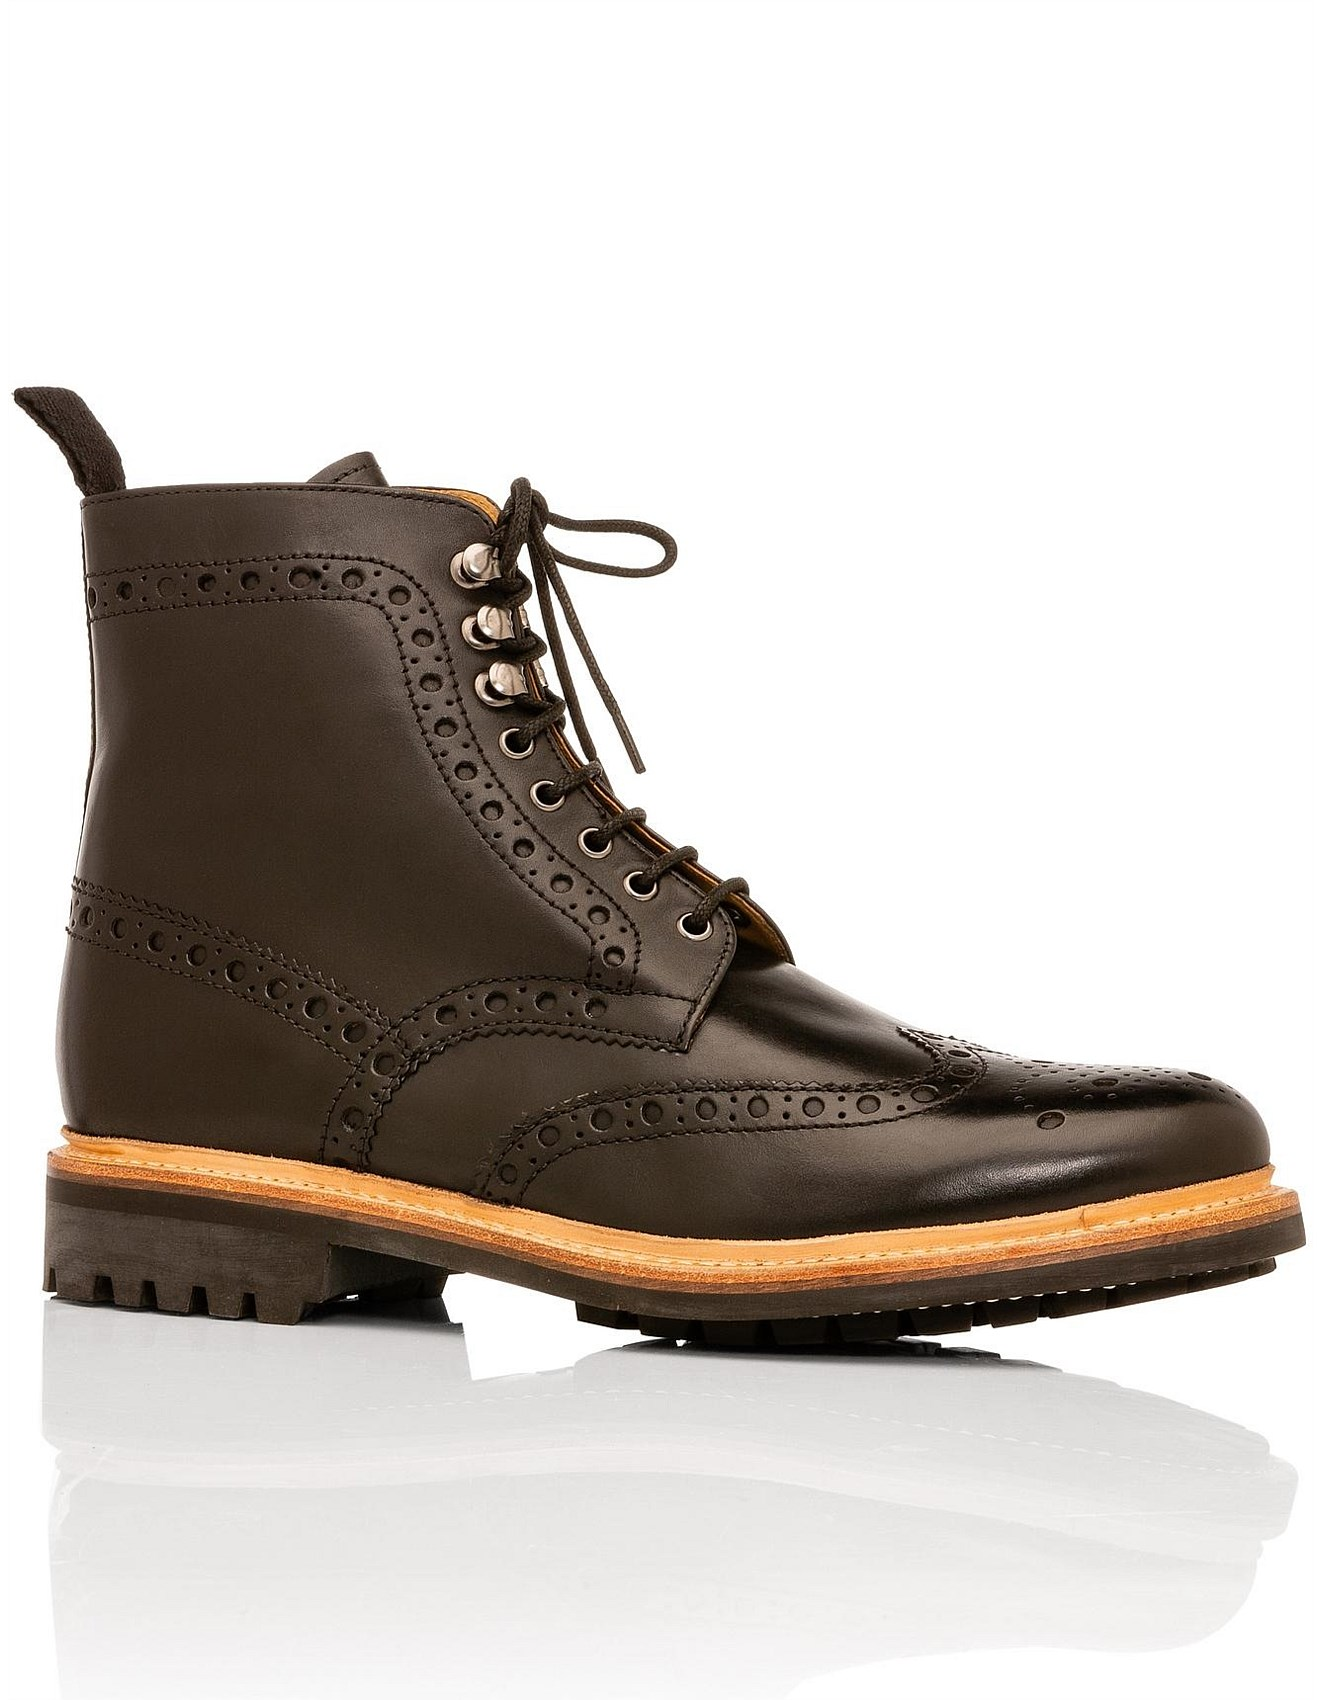 a558558886dfe Grenson   Buy Grenson Shoes & Boots Online   David Jones - FRED C BOOT